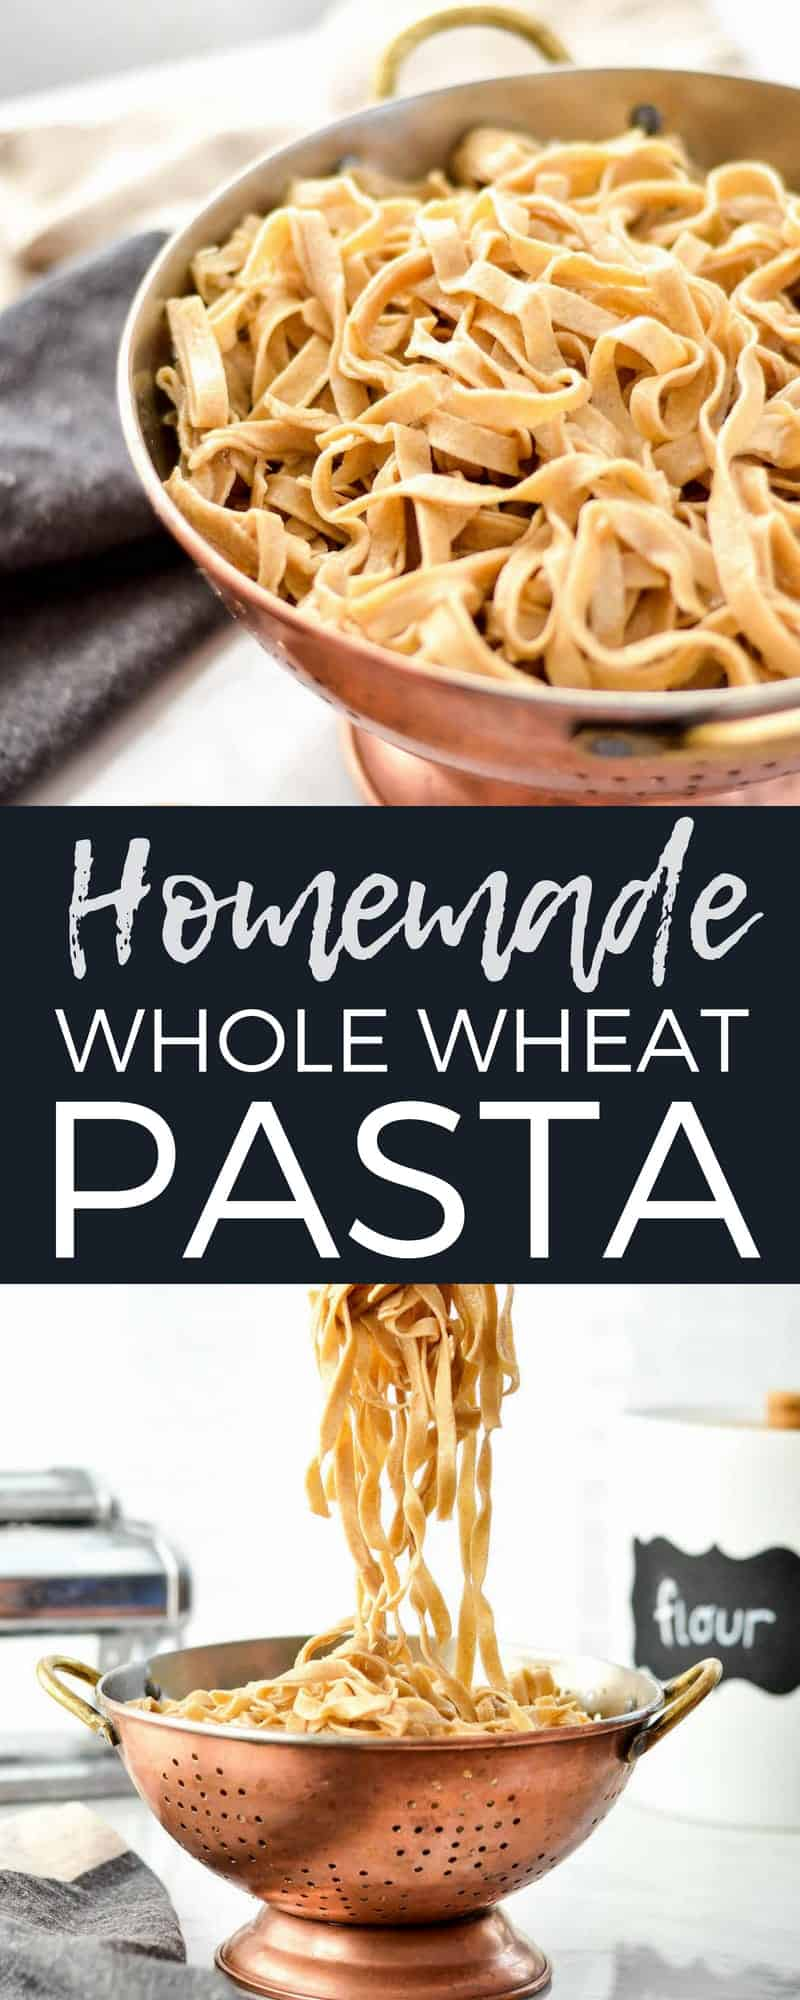 This Homemade Whole Wheat Pasta is the best homemade pasta recipe that taste's worlds better better than boxed varieties! Use it in a delicious main dish or serve it as a yummy side dish! #homemade #pasta #wholewheat #homemadenoodles #pastamaker